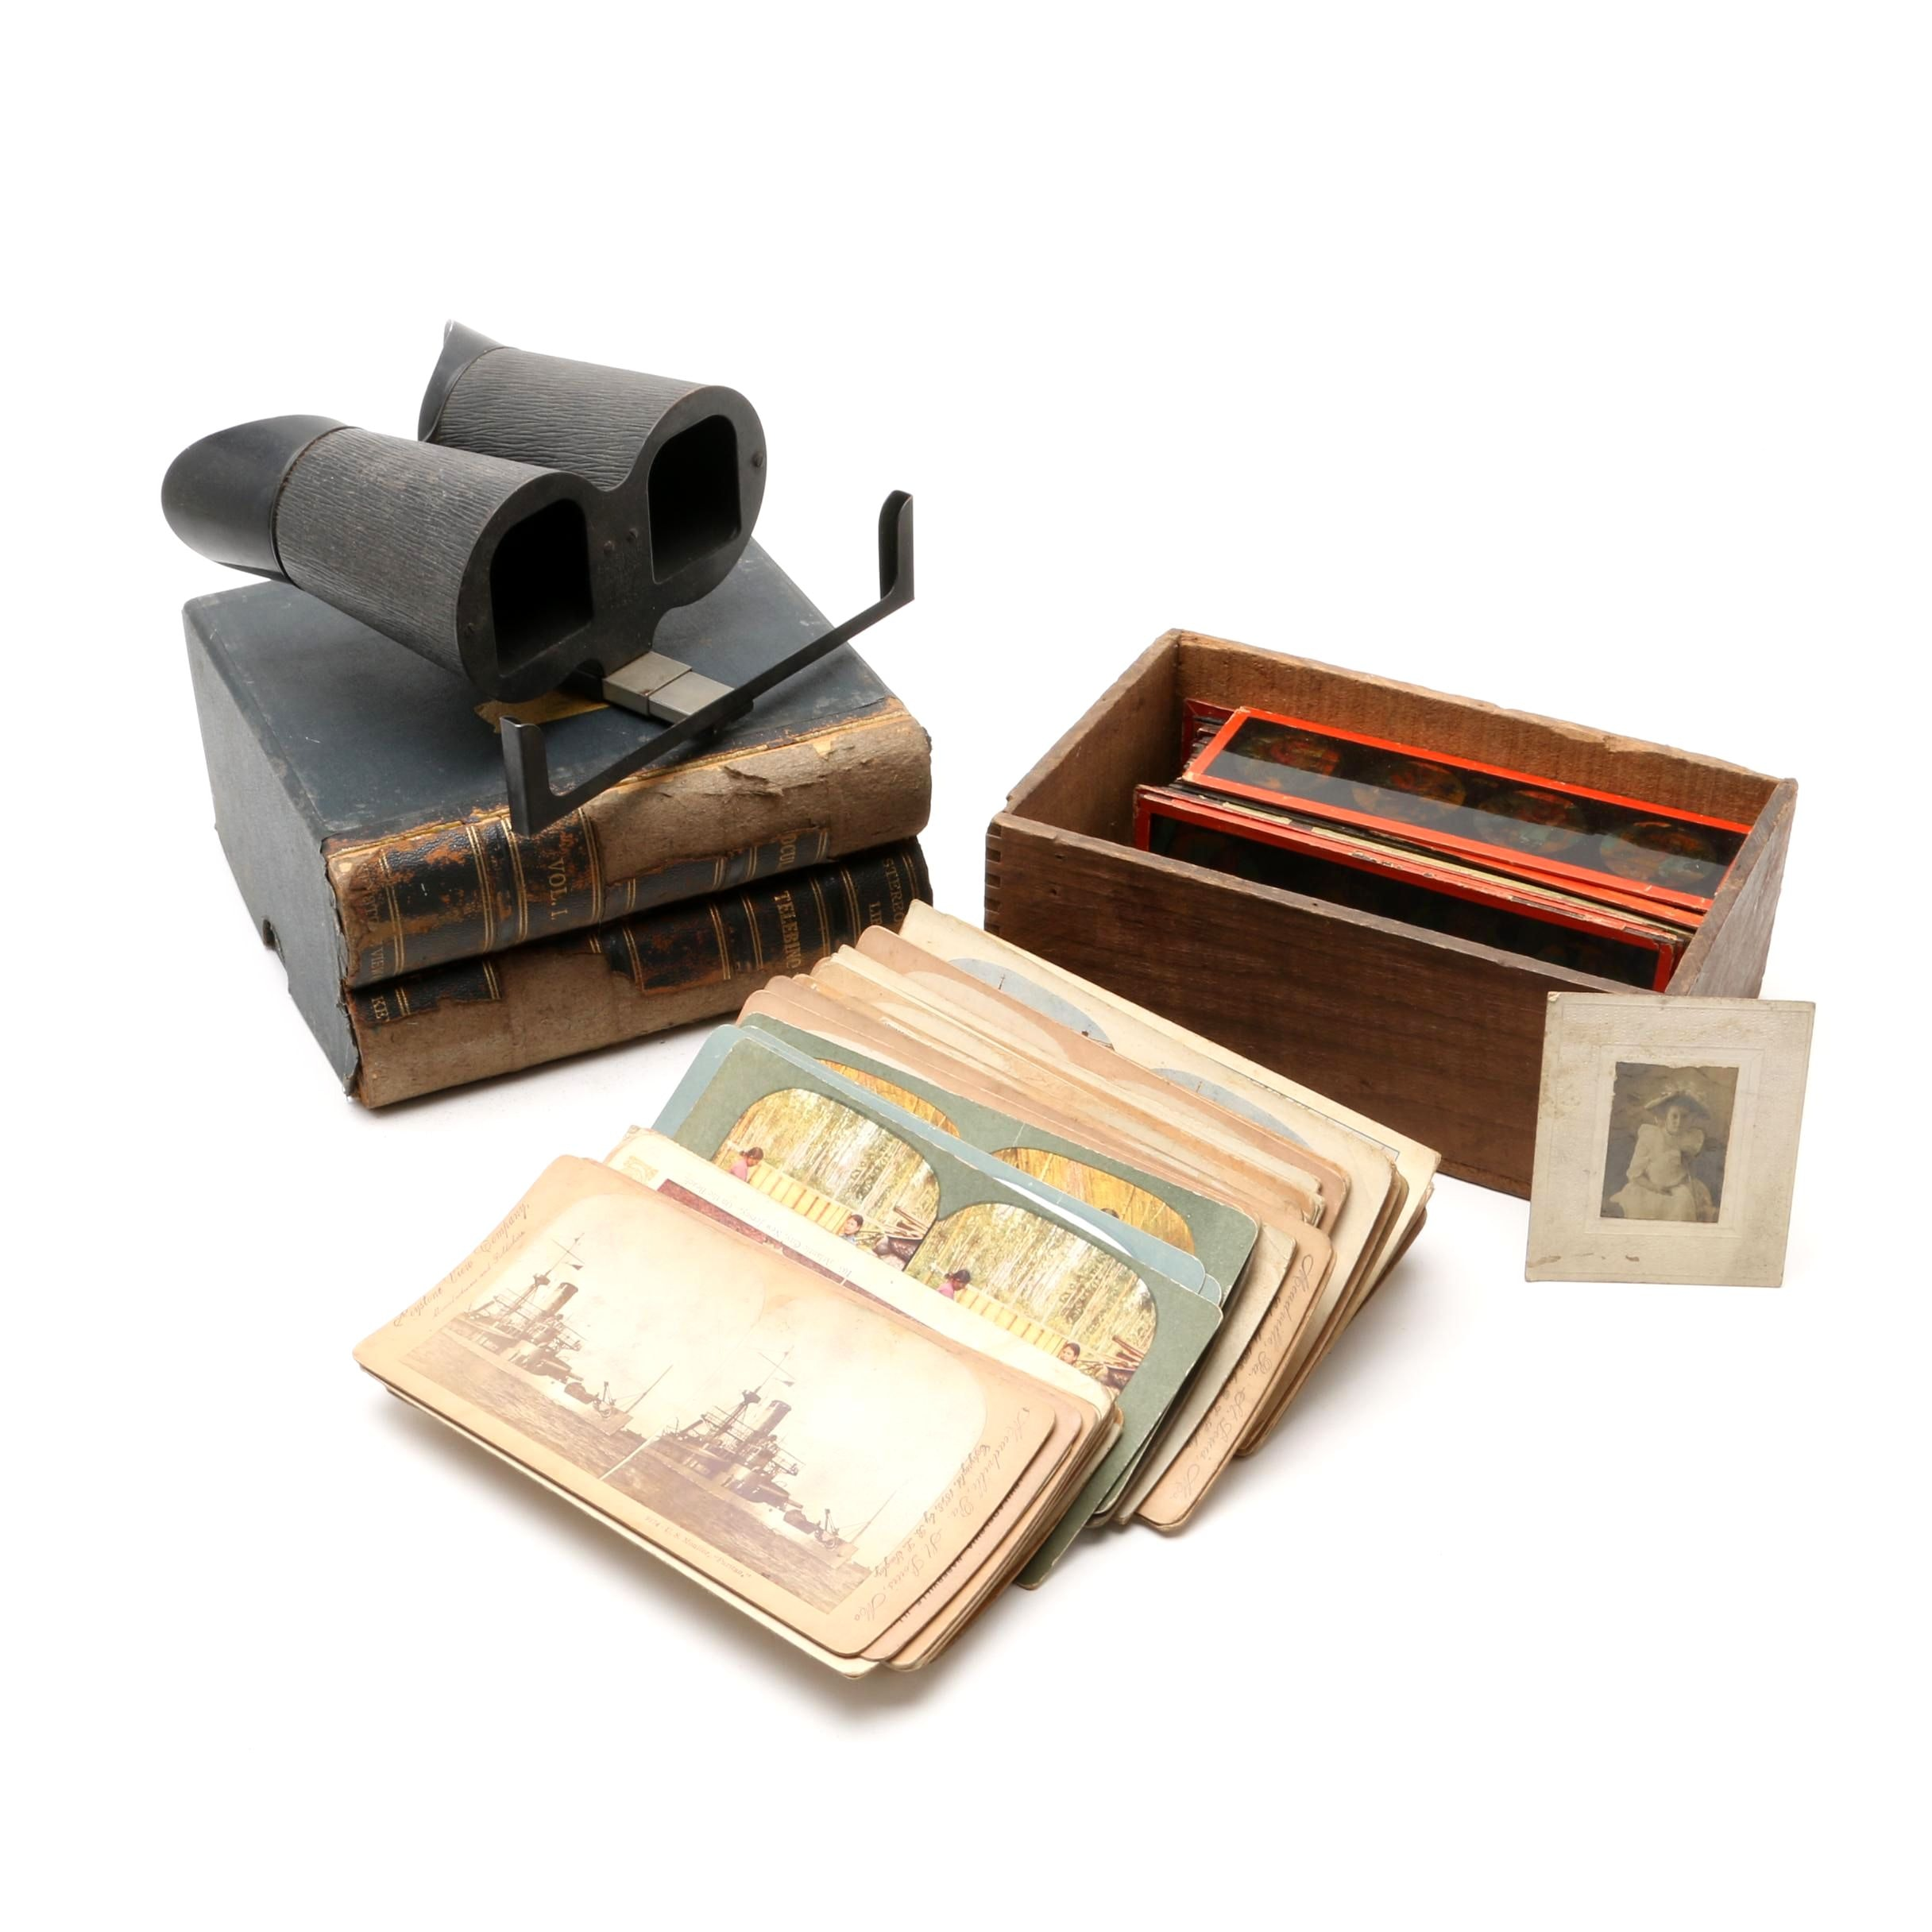 Collection of Antique Stereoviews, Stereoscope, and Glass Illustration Slides